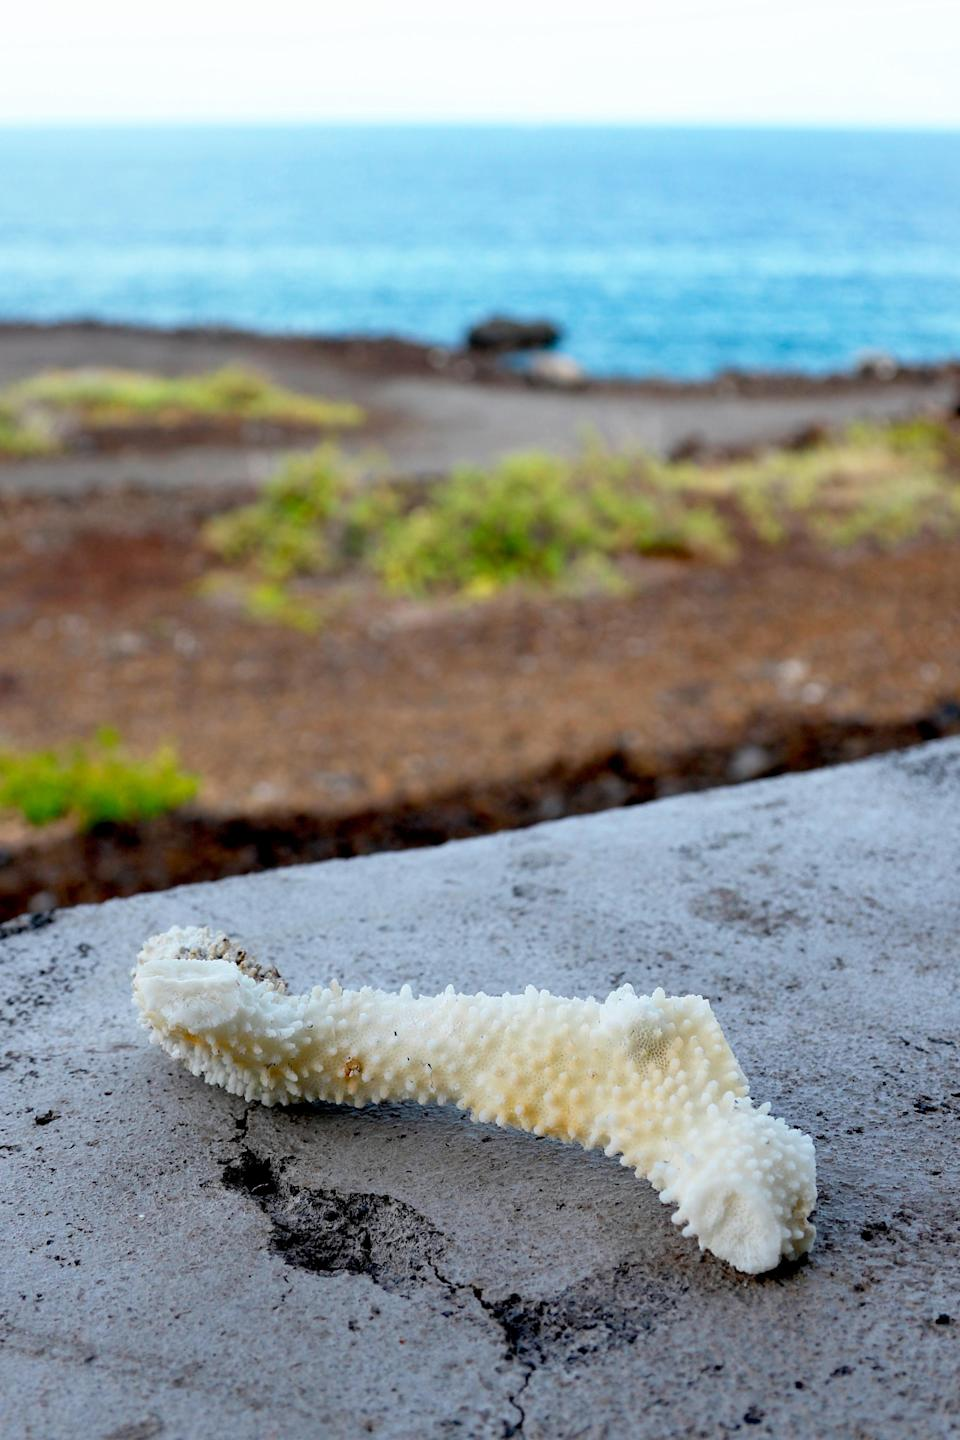 This Sept. 13, 2019 photo shows a chunk of bleached, dead coral shown on a wall near a bay on the west coast of the Big Island near Captain Cook, Hawaii. Coral reefs are vital around the world as they not only provide a habitat for fish _ the base of the marine food chain _ but food and medicine for humans. They also create an essential shoreline barrier that breaks apart large ocean swells and protects densely populated shorelines from storm surges during hurricanes. (AP Photo/Caleb Jones)